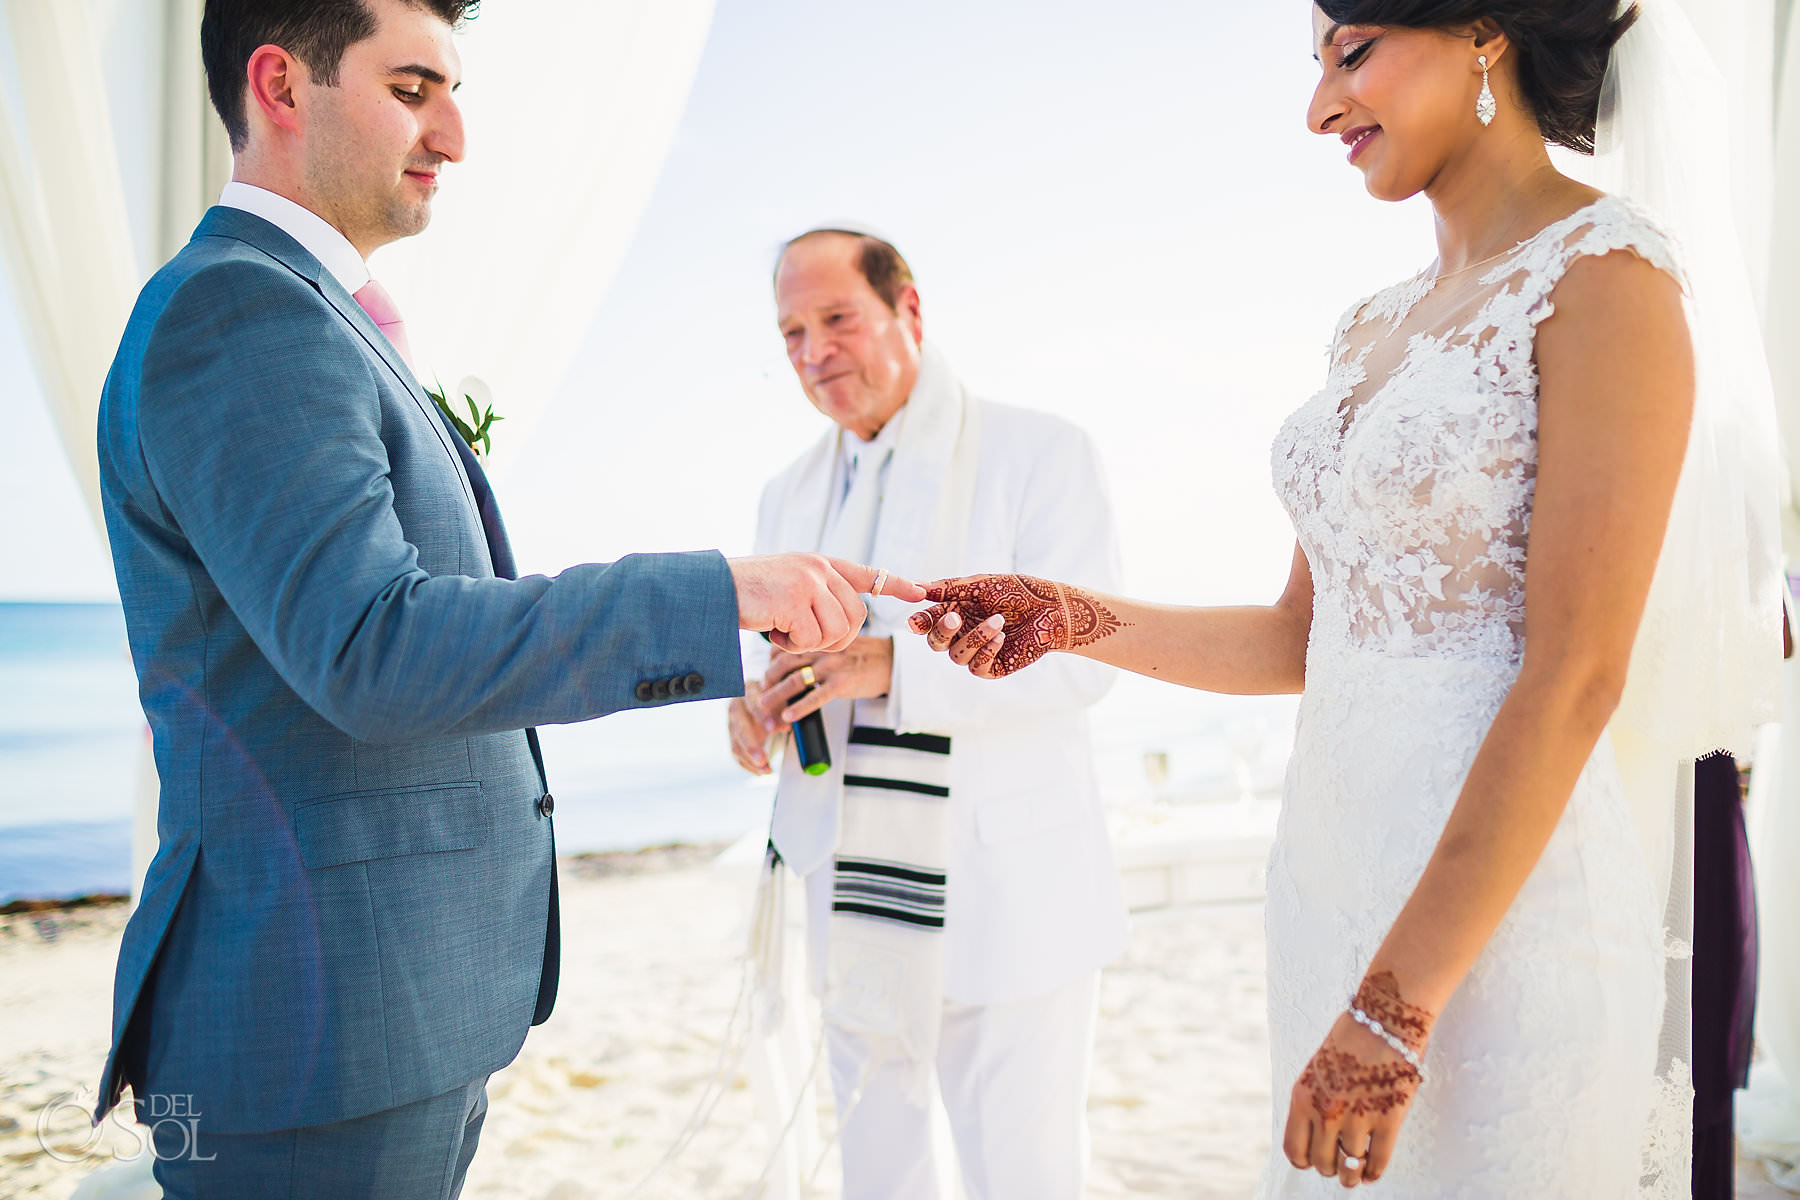 Jewish Ring Exchange Tradition